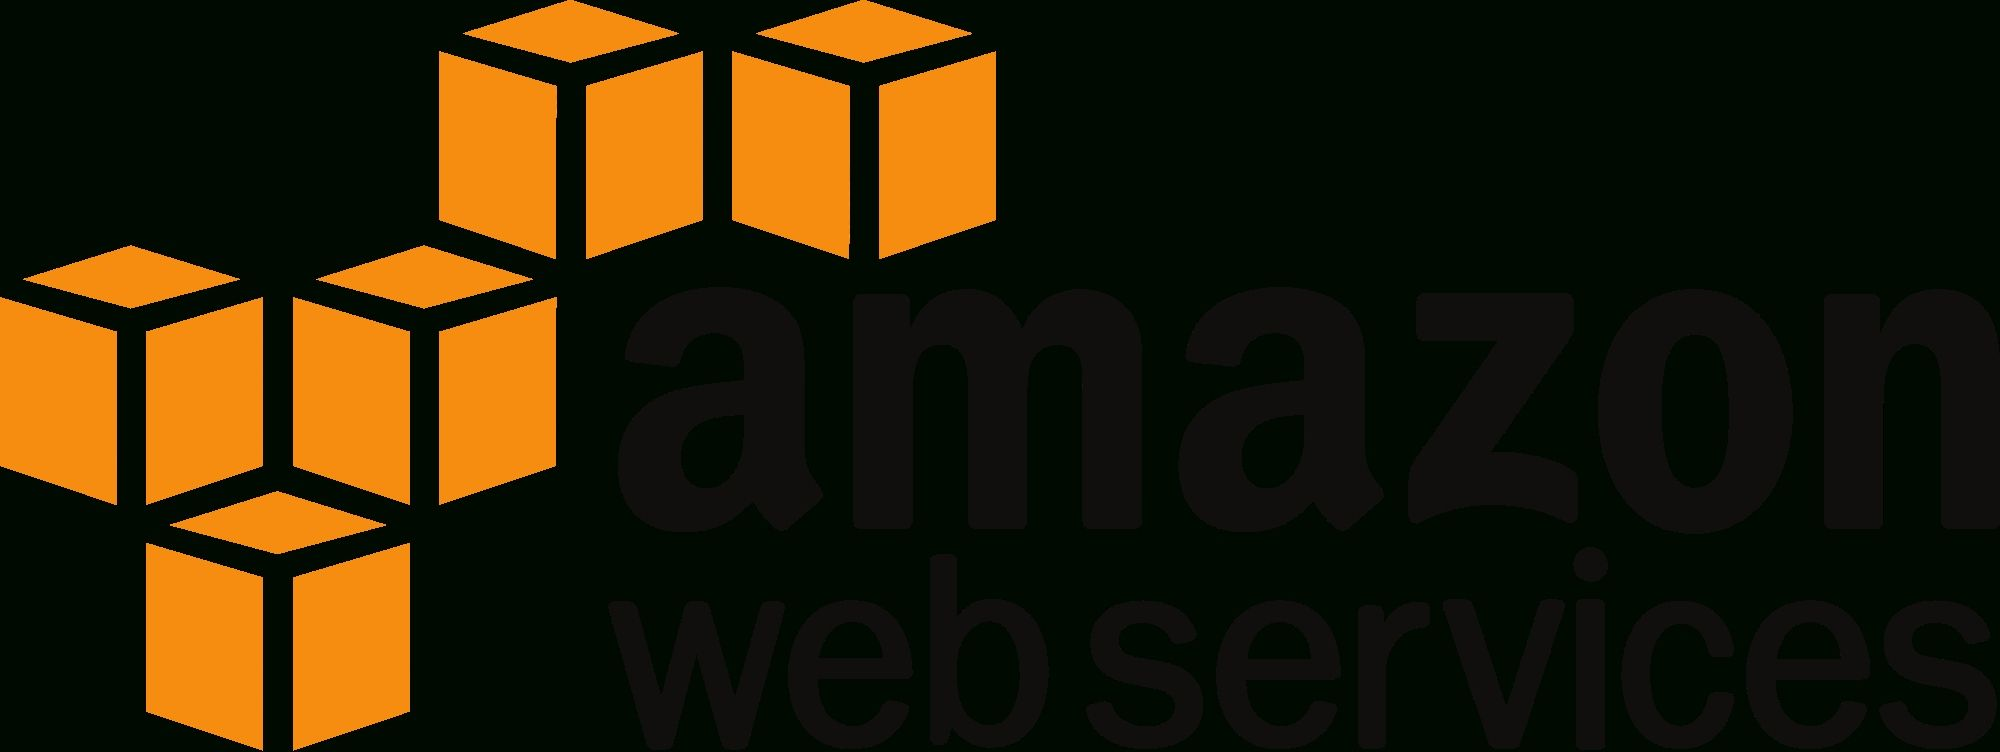 File Amazonwebservices Logo Svg Wikimedia Commons With Aws Logo